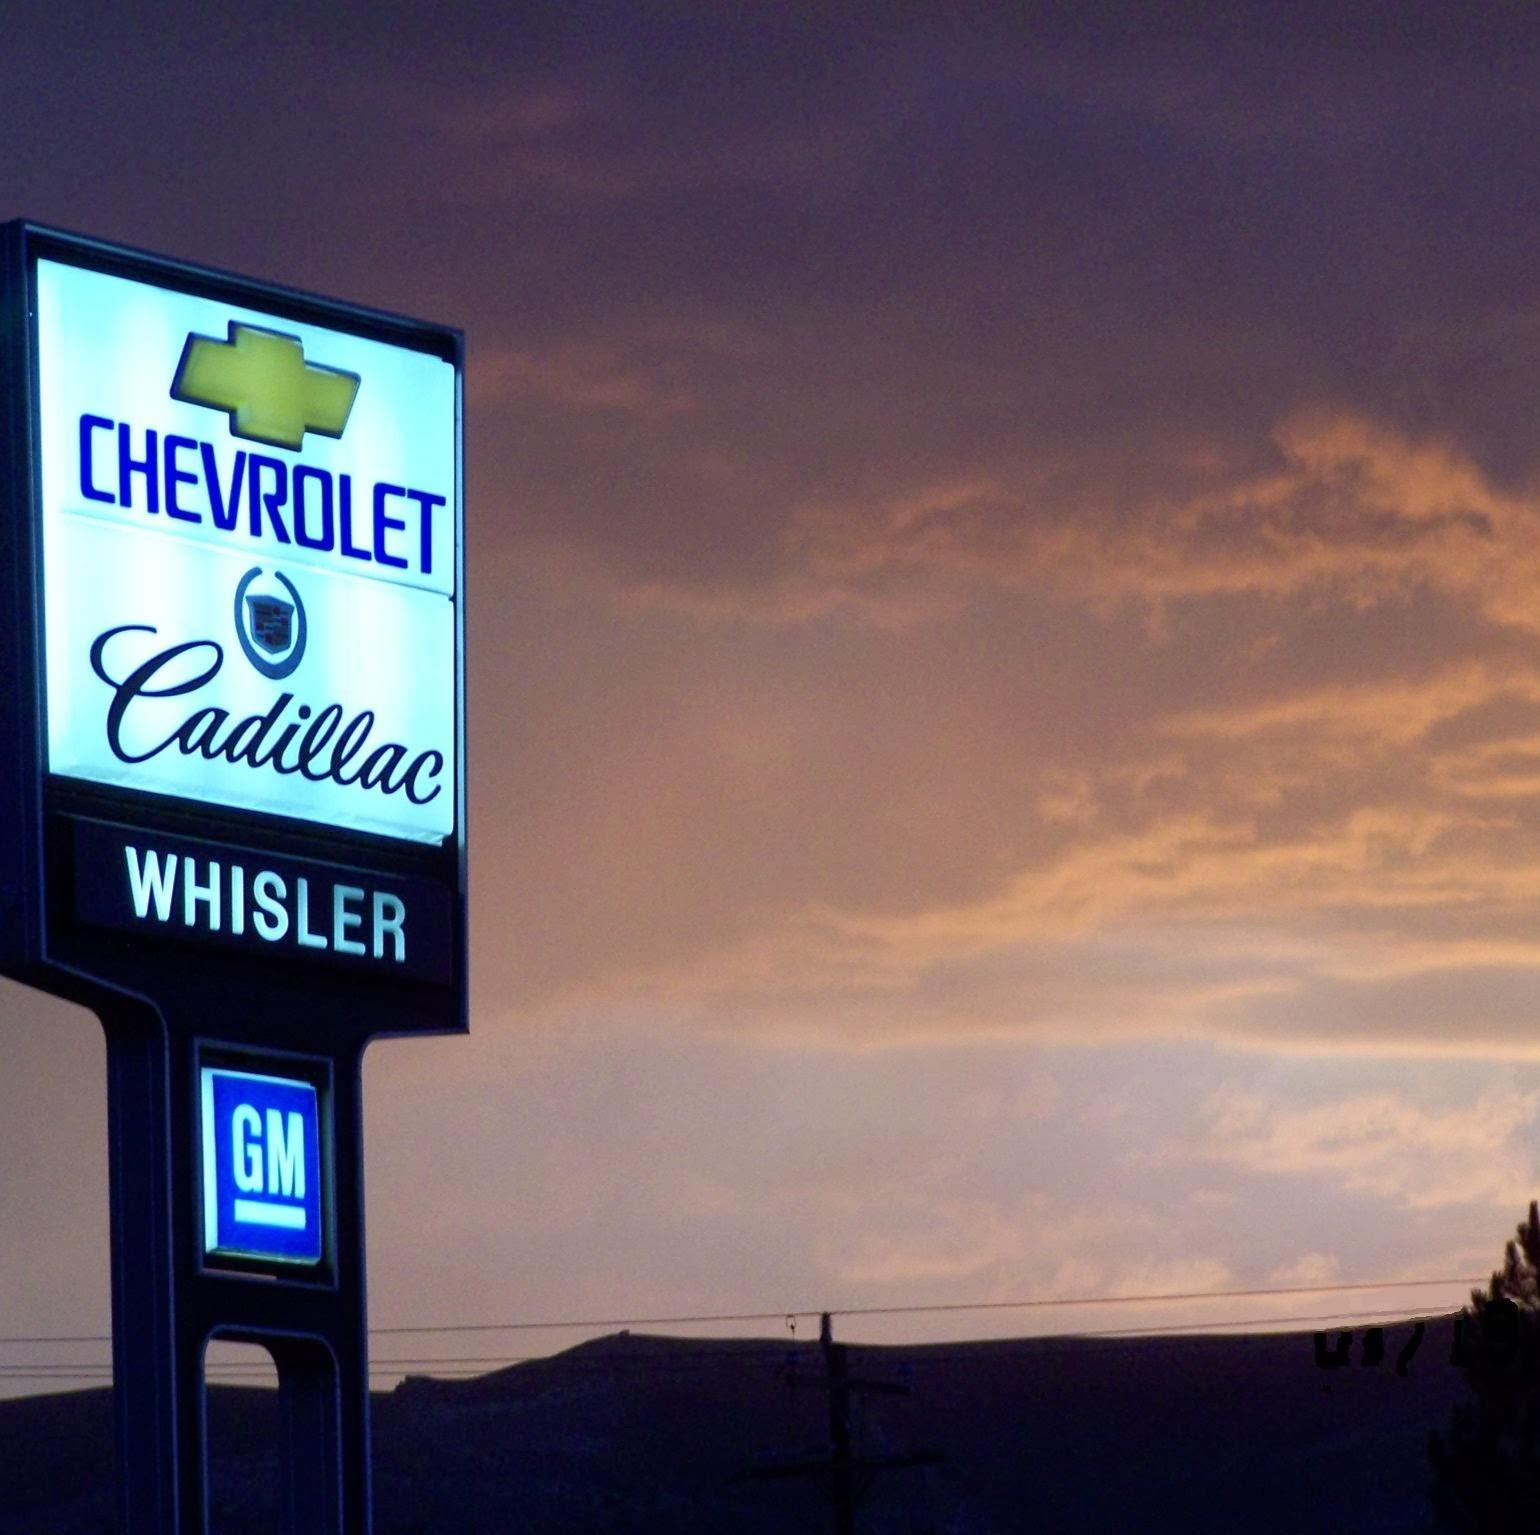 whisler chevrolet cadillac in rock springs wy 82901. Black Bedroom Furniture Sets. Home Design Ideas